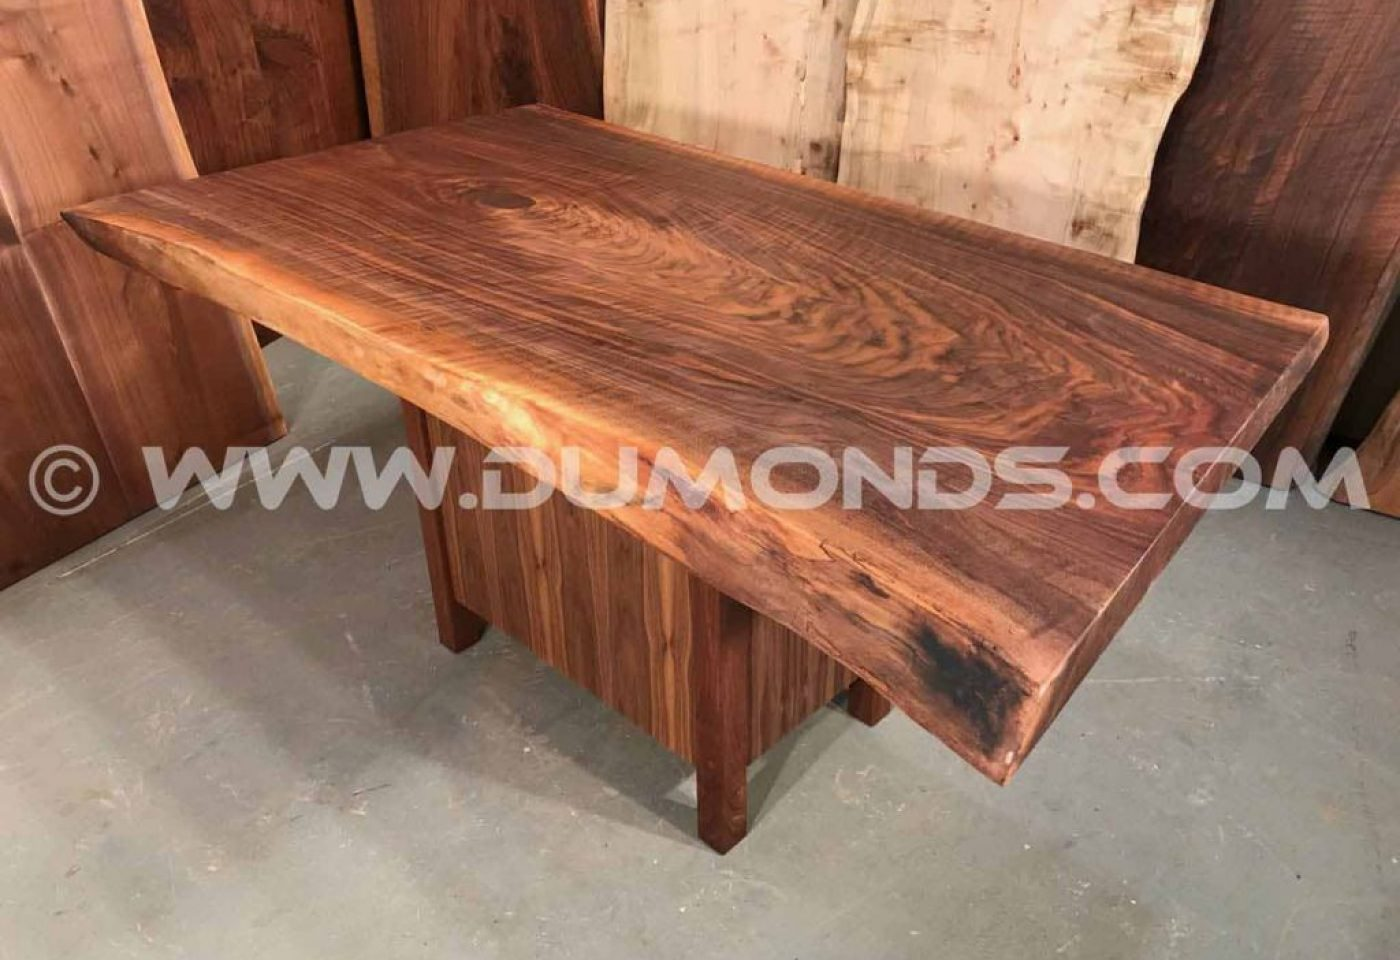 RECYCLED CURLY WALNUT TABLE WITH WALNUT PEDESTAL BASE